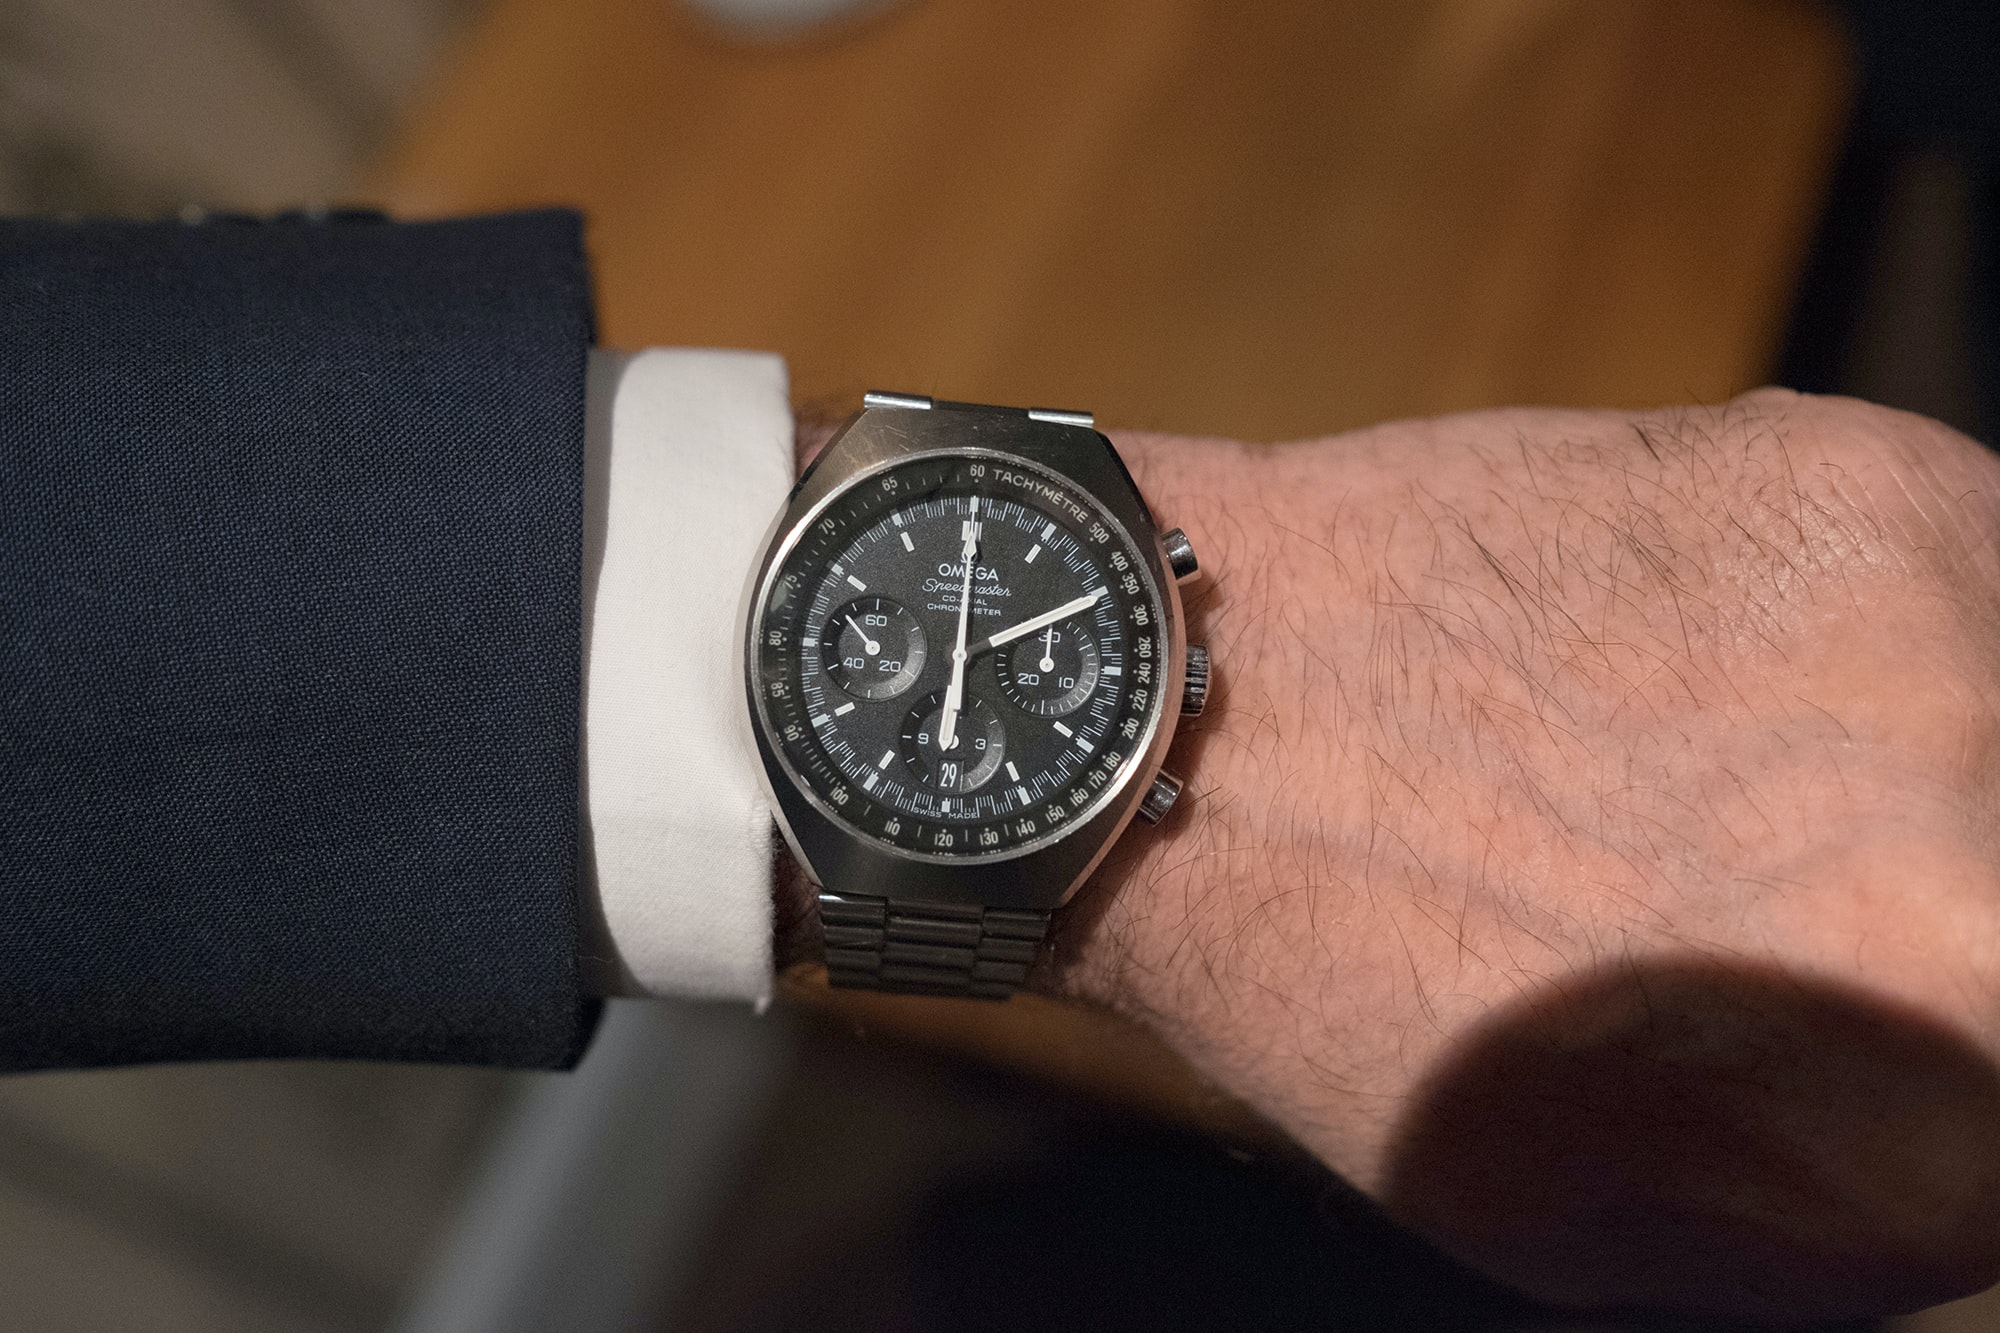 Photo Report: Watch Spotting At The HODINKEE Meet-Up In London (Plus Our Holiday 2016 Pop-Up At Harrods) Photo Report: Watch Spotting At The HODINKEE Meet-Up In London (Plus Our Holiday 2016 Pop-Up At Harrods) Hodinkee event 29 nov 2016